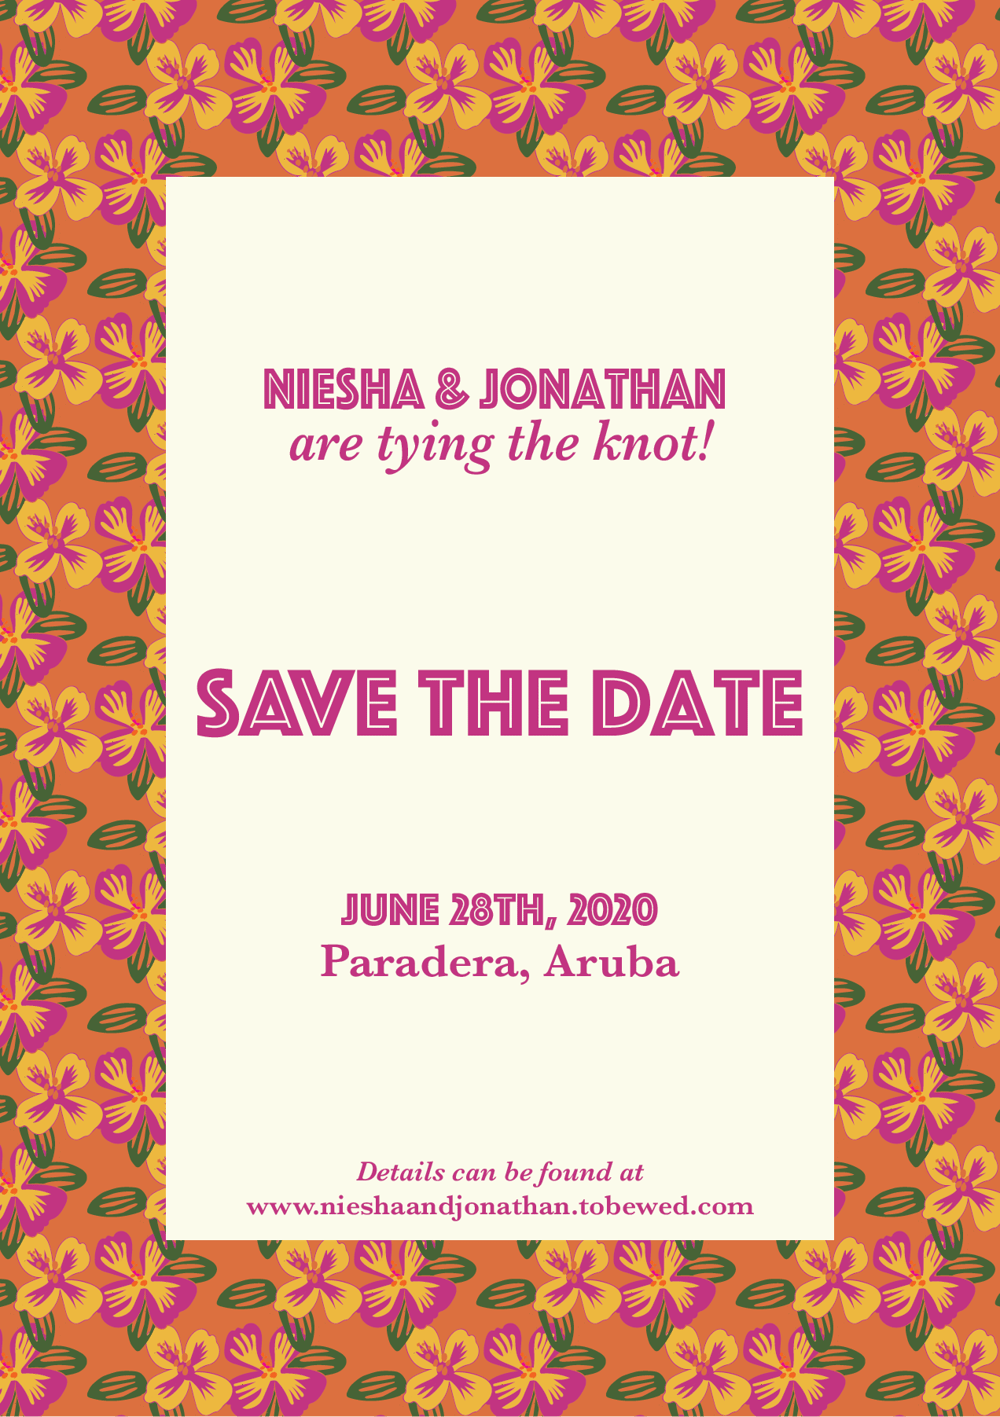 Gen's Project: Niesha & Jonathan's Save the Date - image 4 - student project